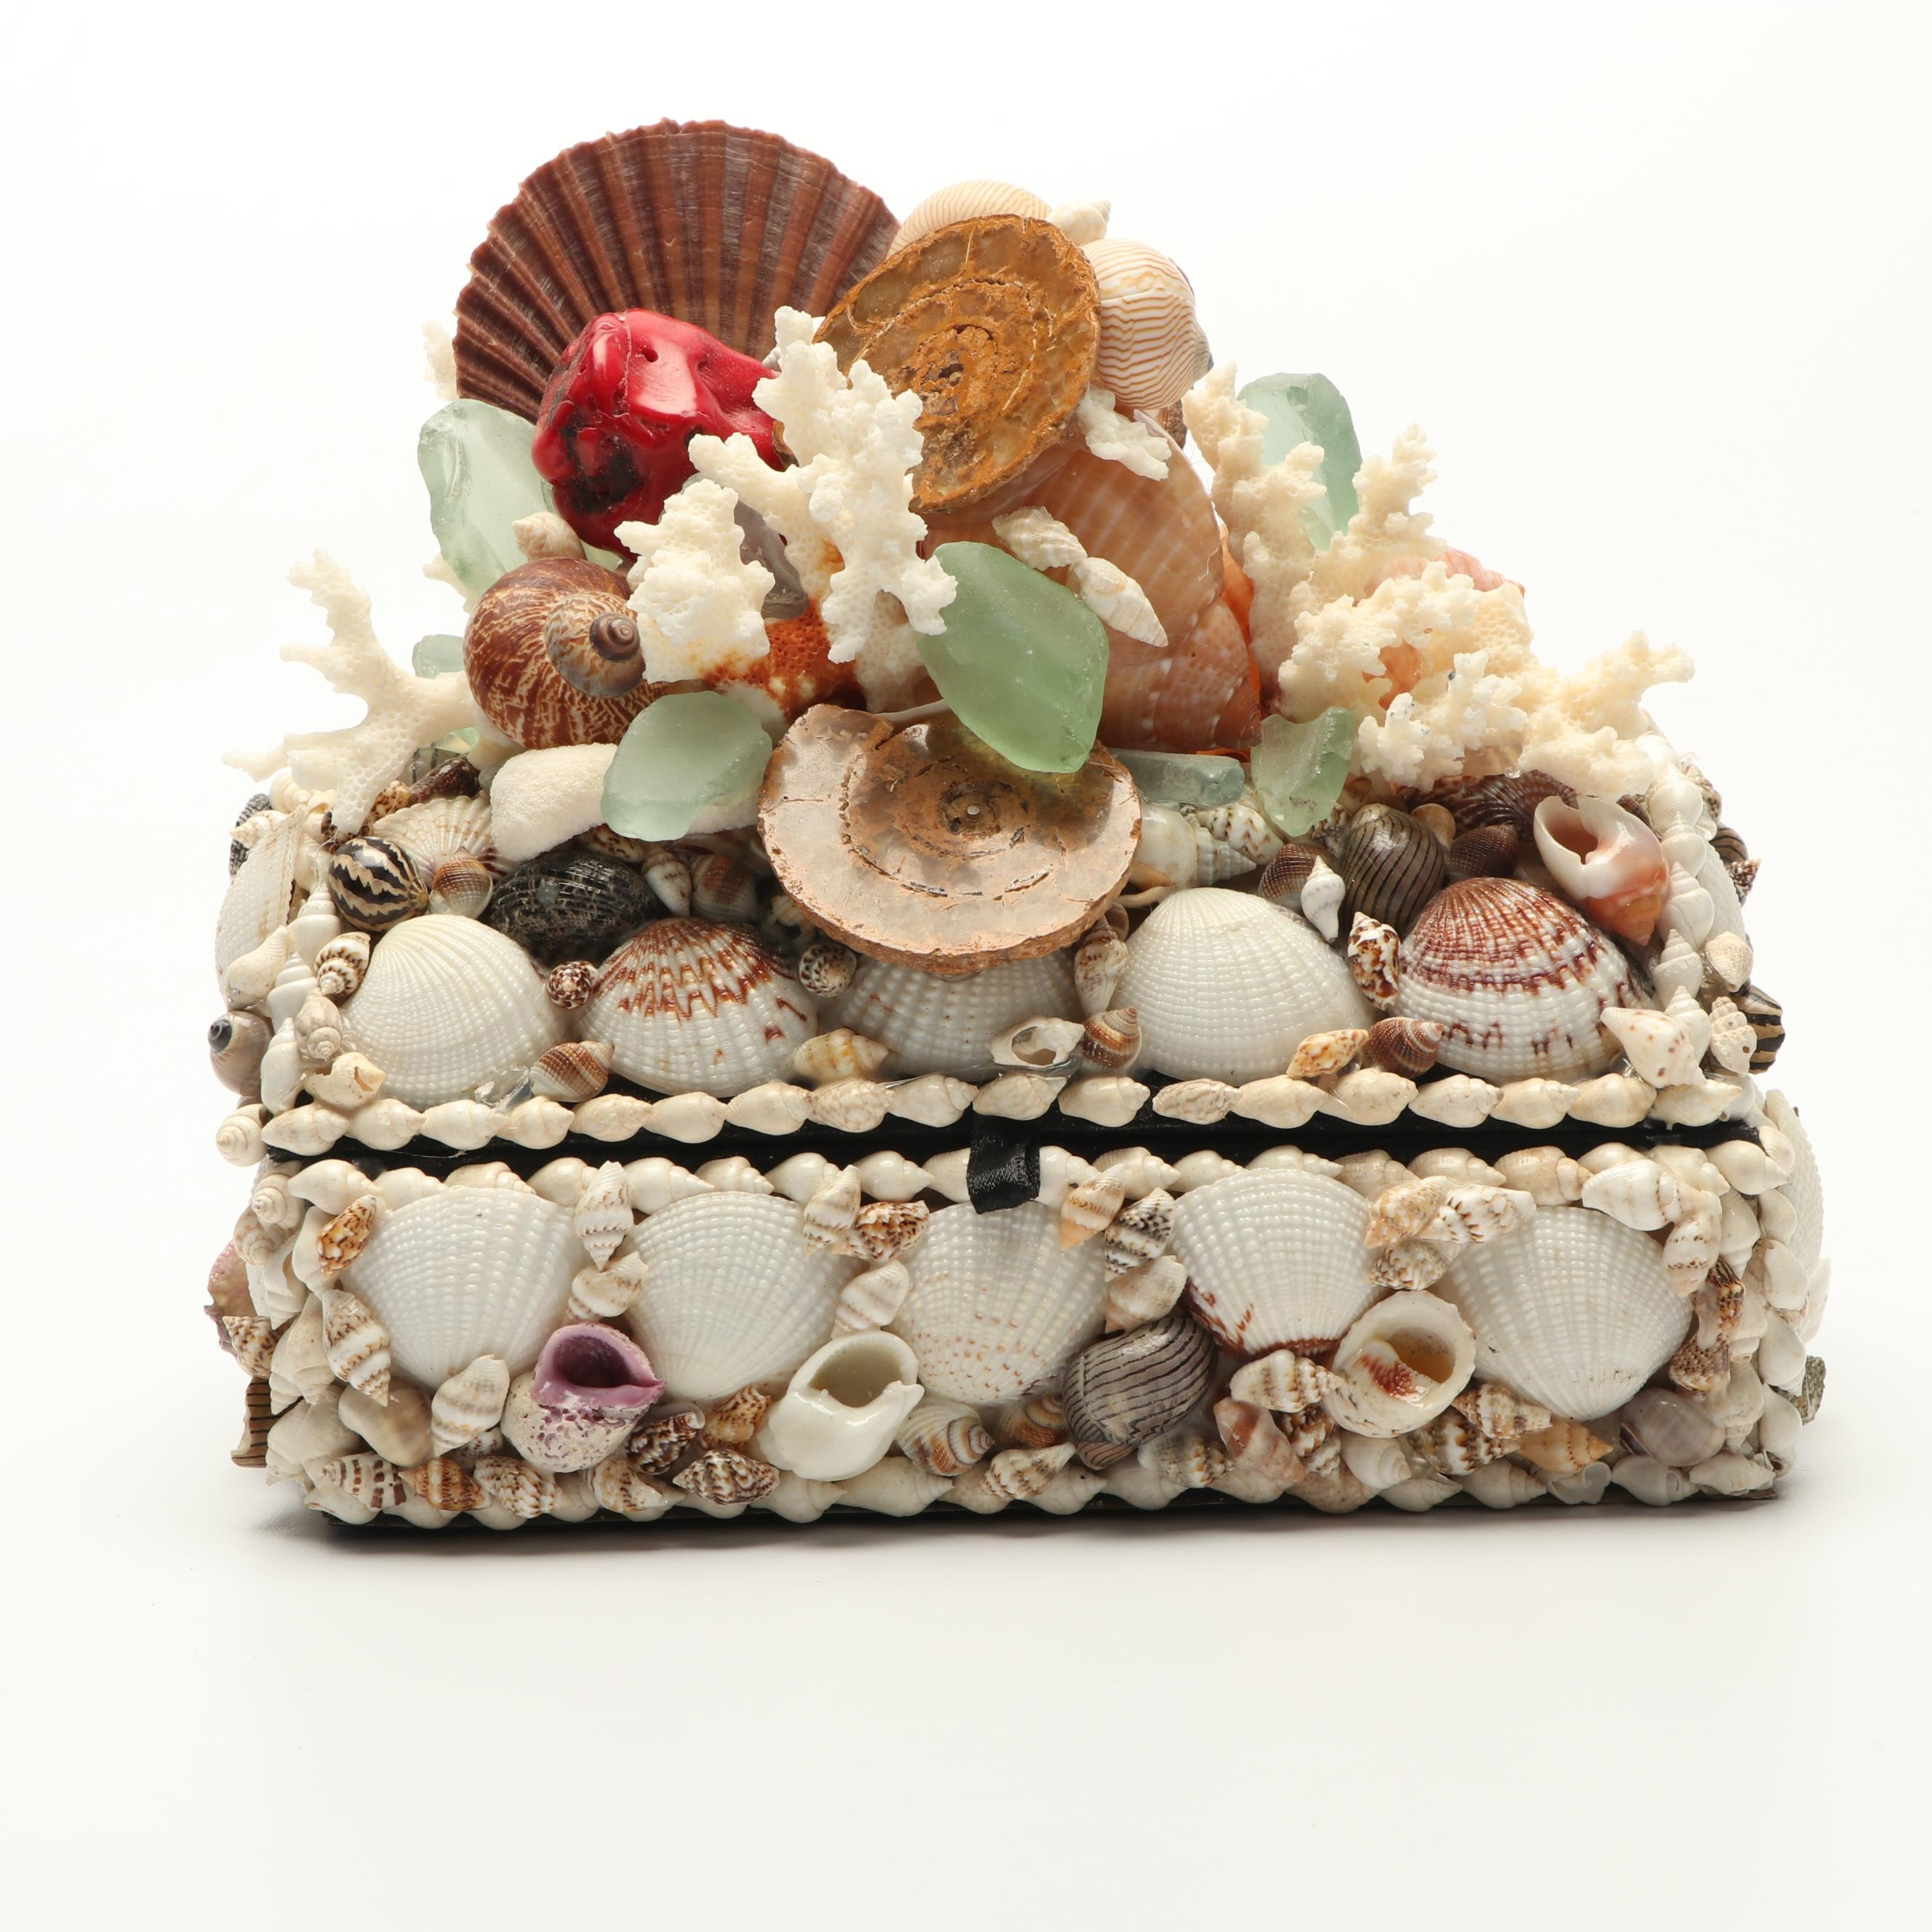 Marianne E. Handcrafted Shell, Coral, and Glass Adorned Trinket Box